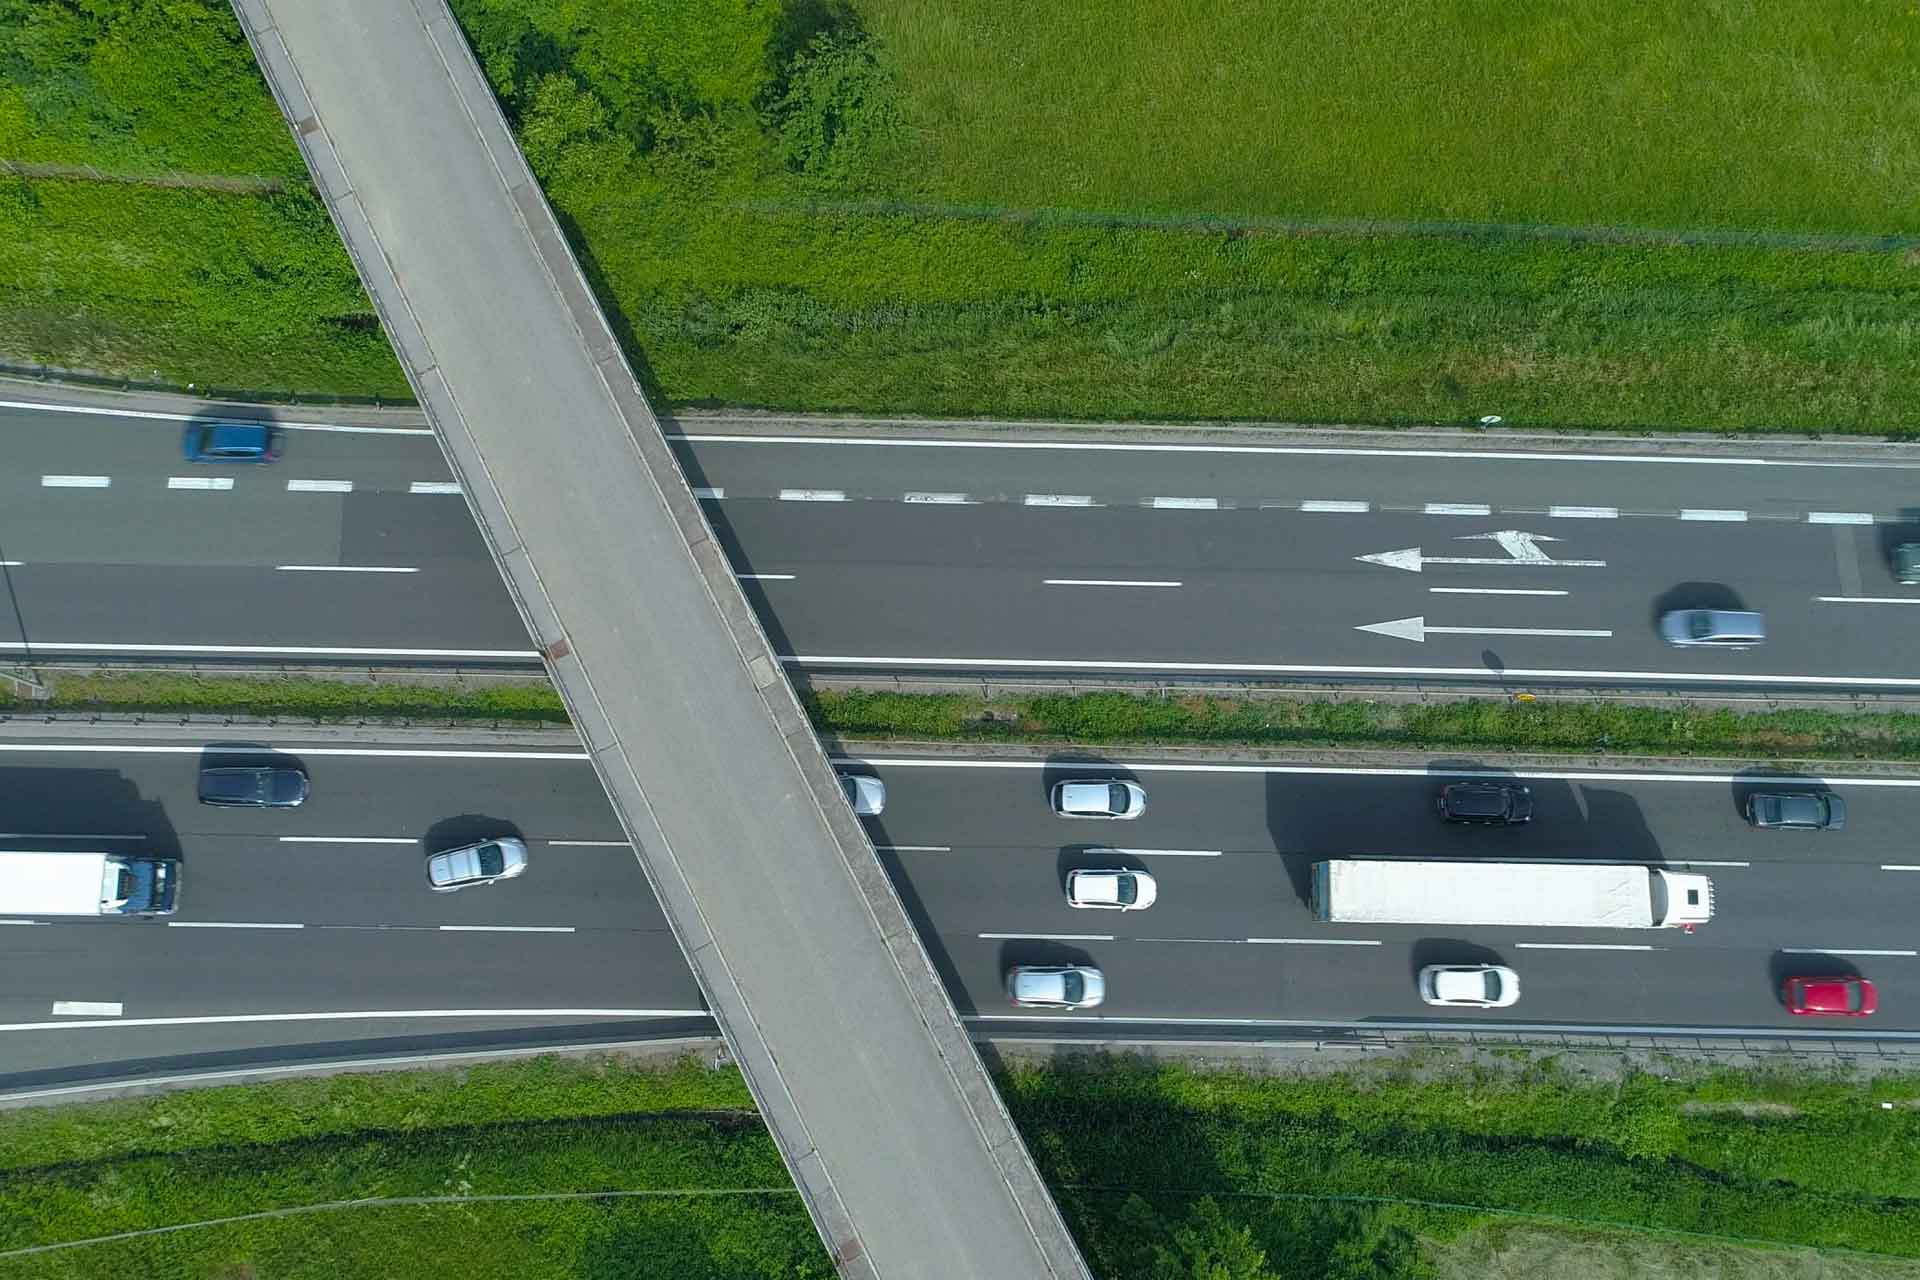 overhead_view_of_busy_highway